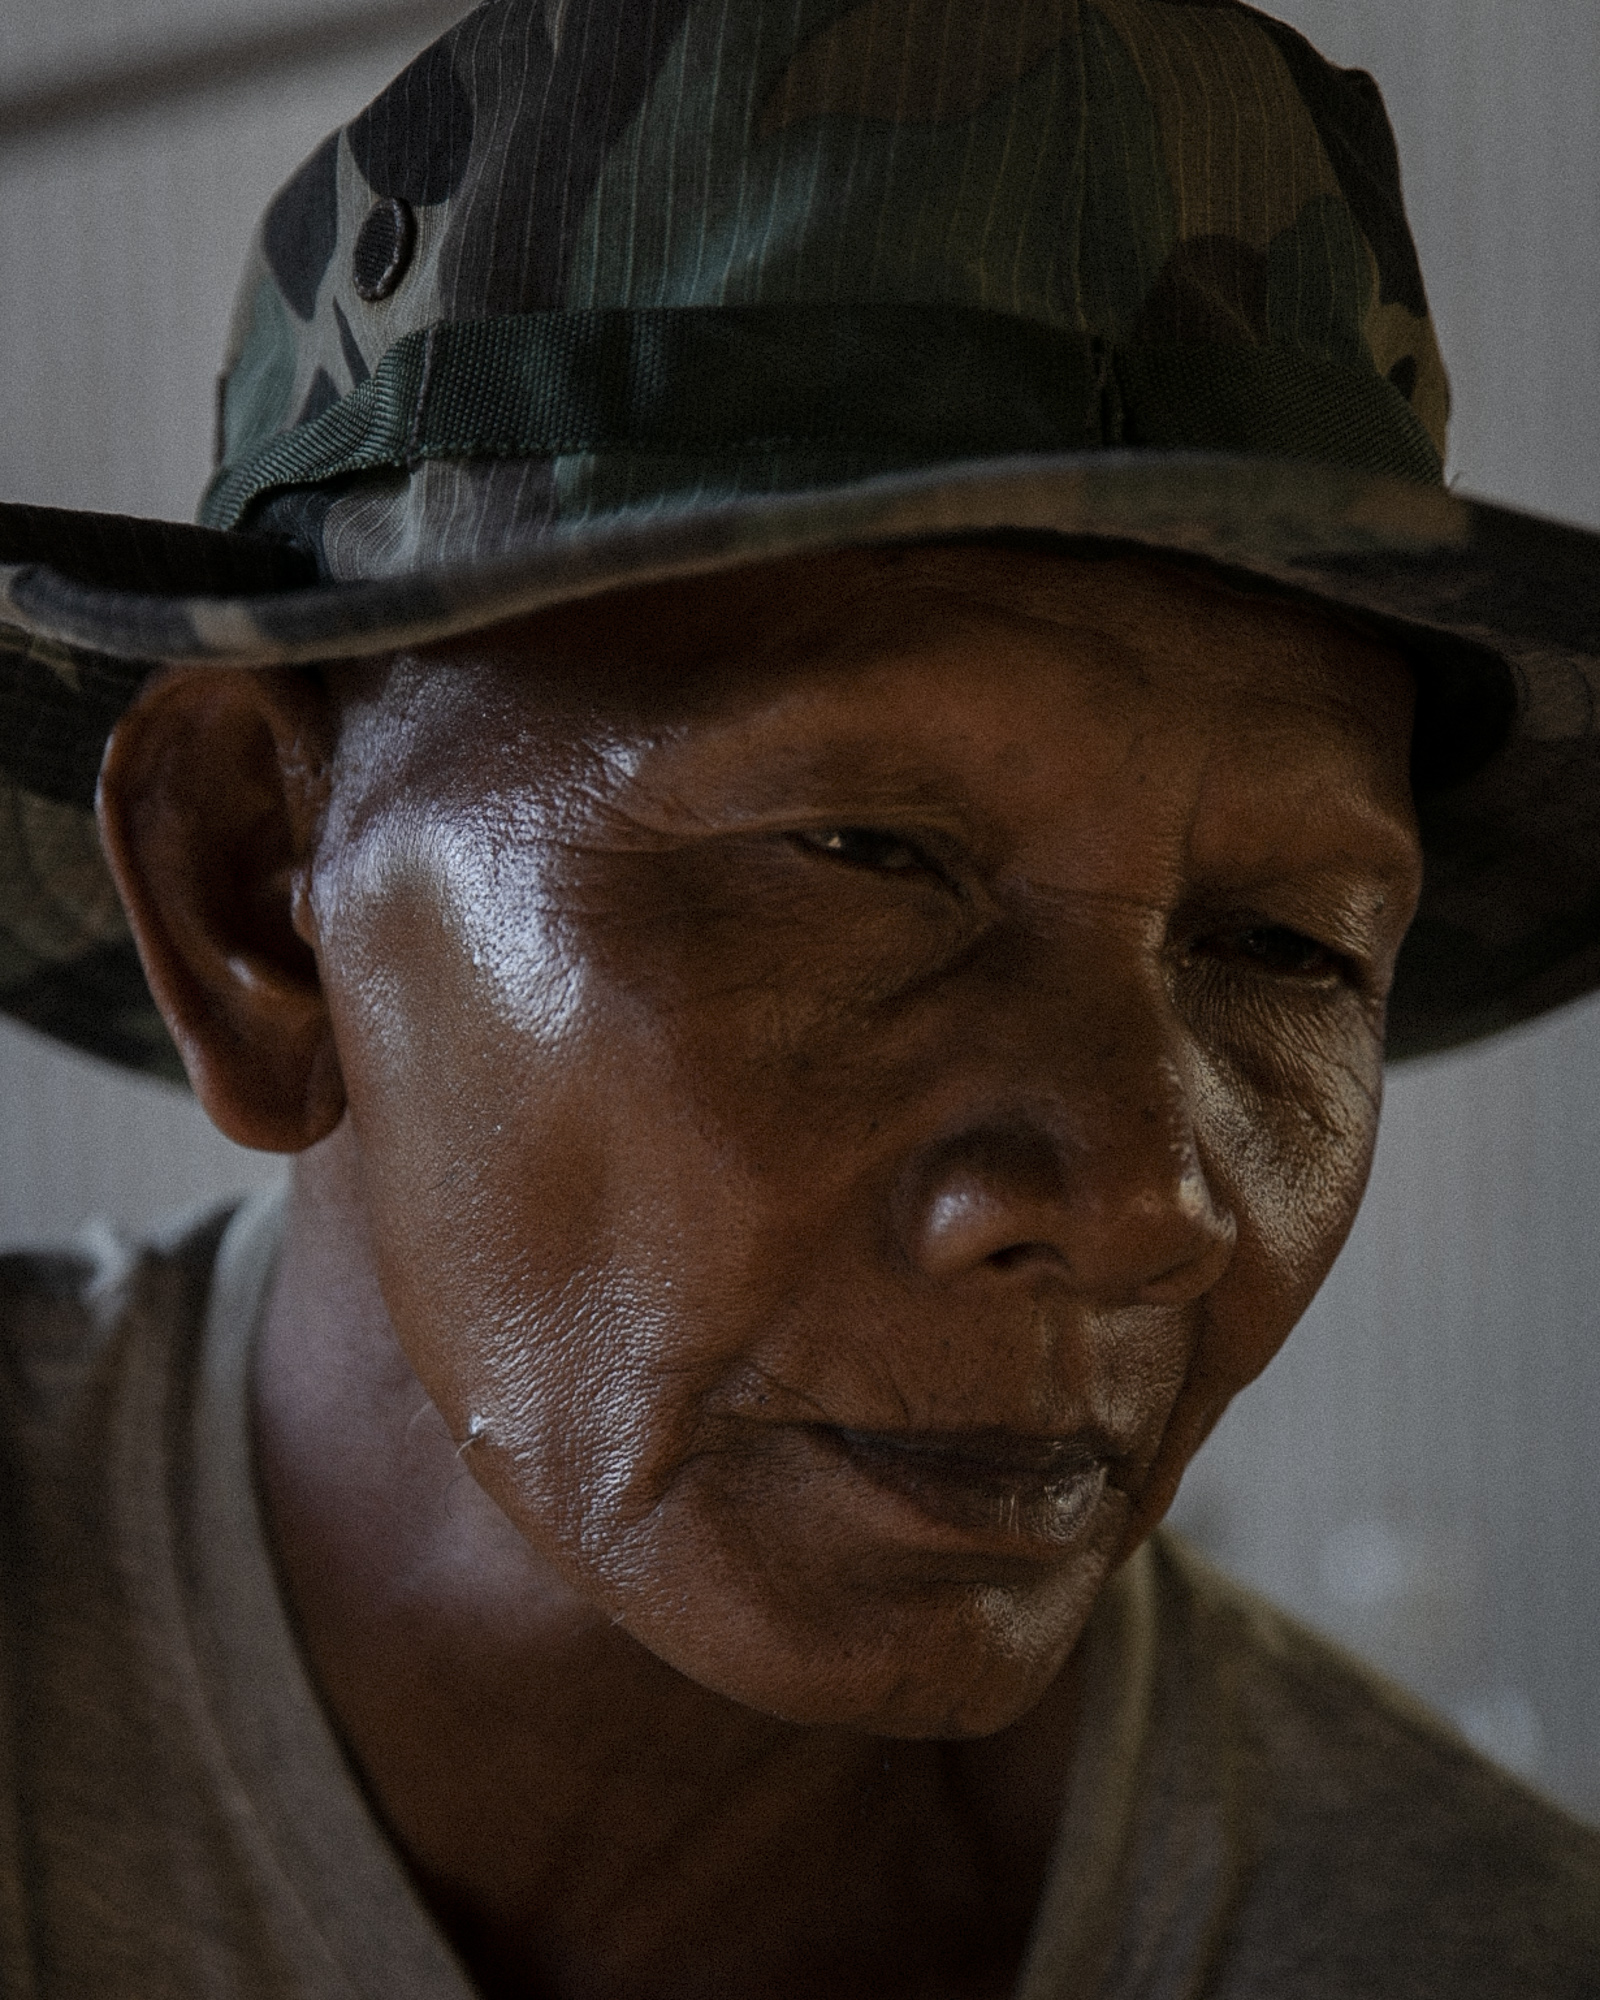 Former Khmer Rouge cadres living in Anlong Veng